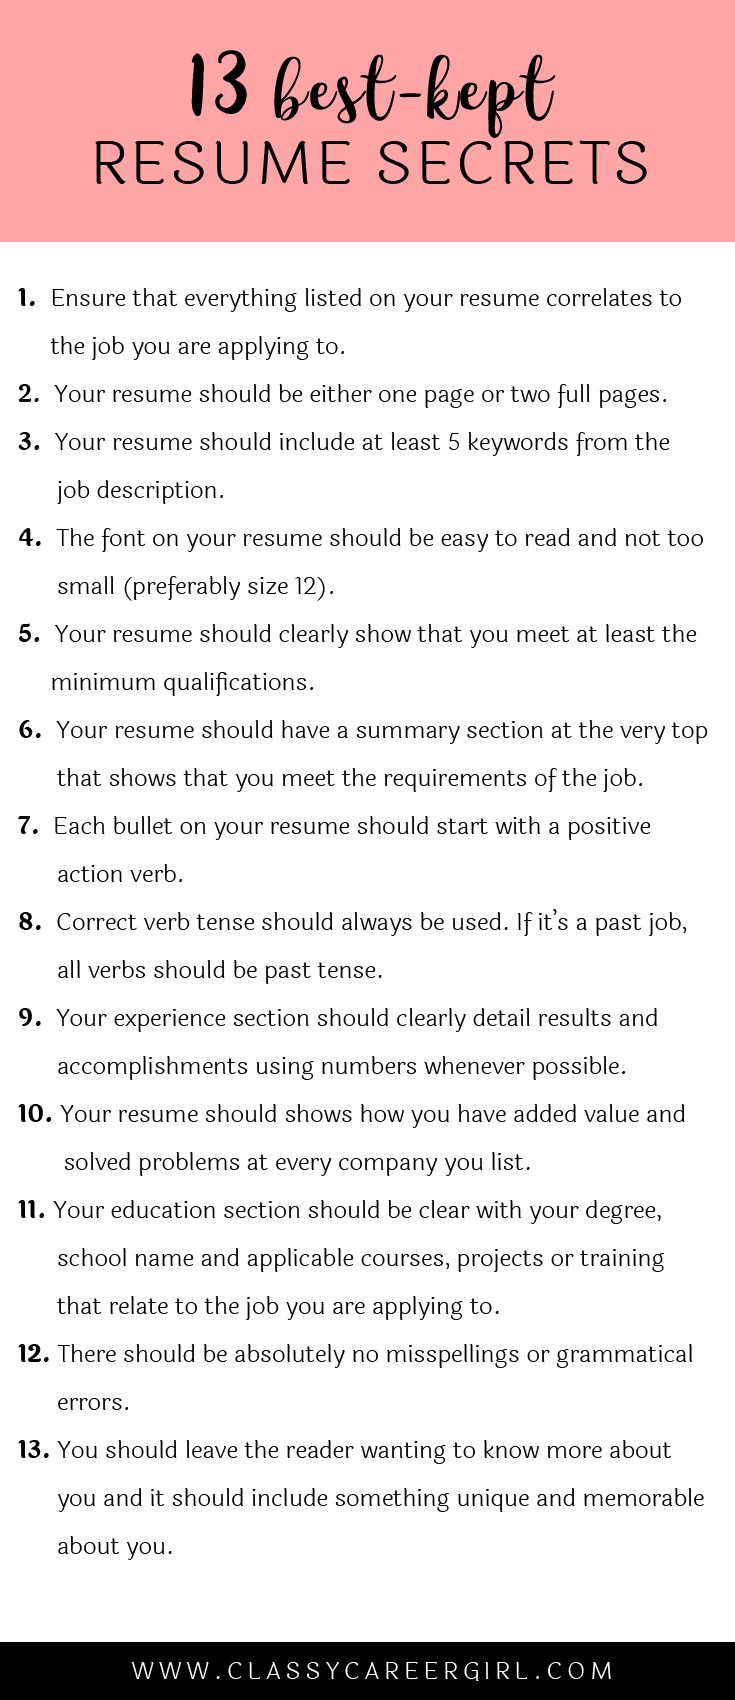 Opposenewapstandardsus  Pleasant  Ideas About Resume On Pinterest  Cv Format Resume Cv And  With Fetching Some Hiring Managers Will Toss Your Resume Out If You Dont Know These  With Archaic Ceo Resume Sample Also Sorority Resume Template In Addition Resume Copy And Special Skills To Put On A Resume As Well As Freelance Graphic Designer Resume Additionally Resume Examples Education From Pinterestcom With Opposenewapstandardsus  Fetching  Ideas About Resume On Pinterest  Cv Format Resume Cv And  With Archaic Some Hiring Managers Will Toss Your Resume Out If You Dont Know These  And Pleasant Ceo Resume Sample Also Sorority Resume Template In Addition Resume Copy From Pinterestcom